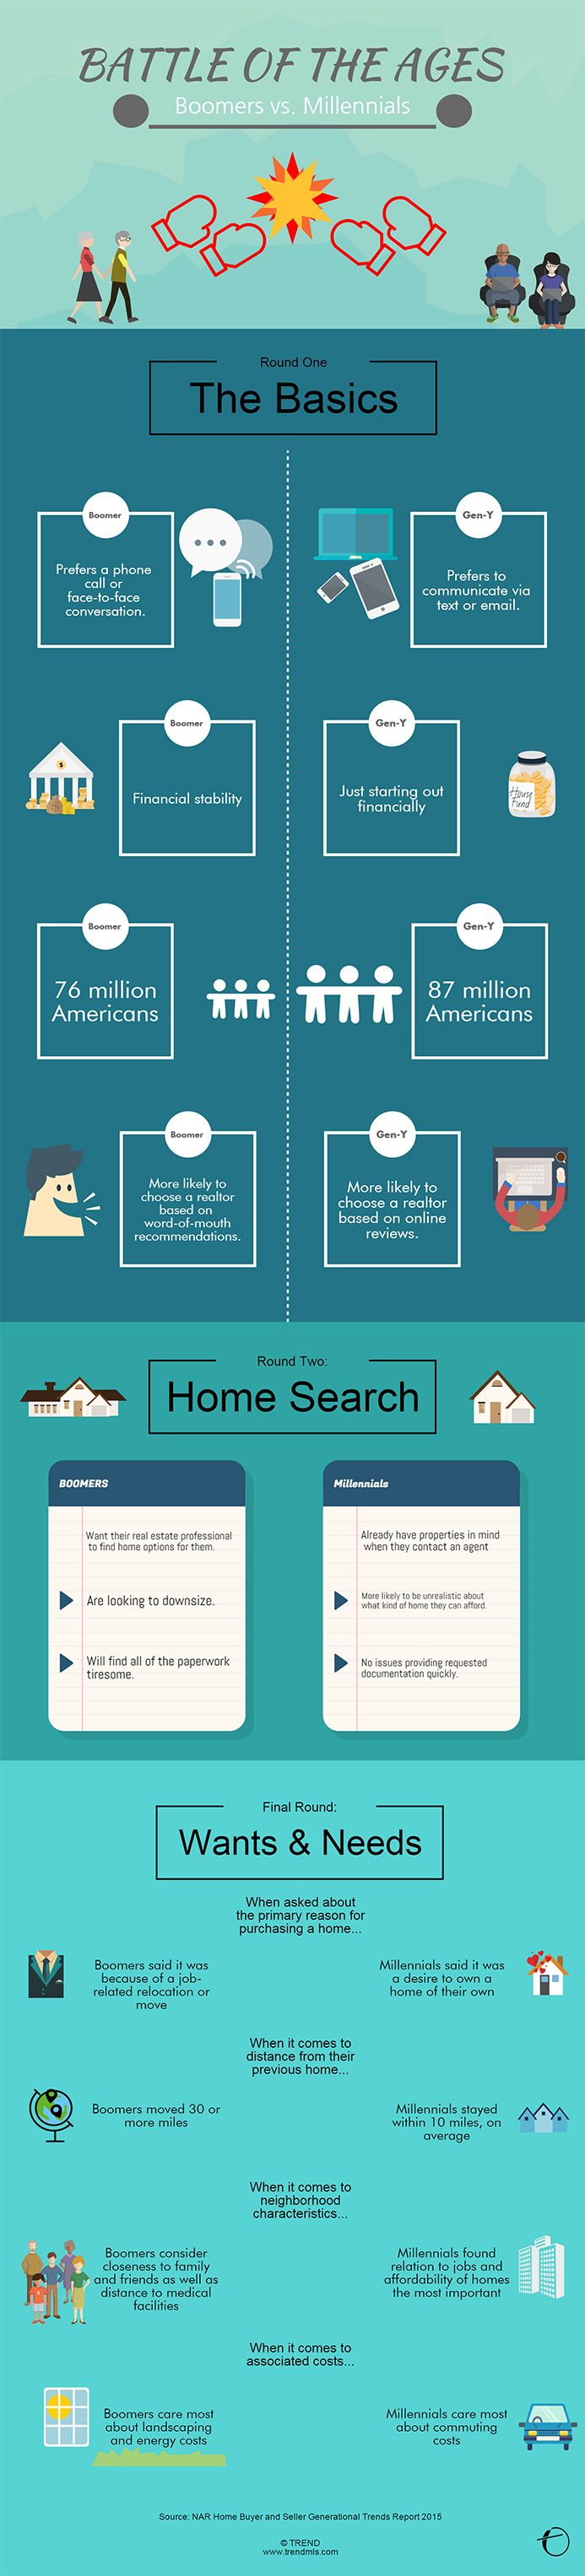 A lot of focus has been placed on getting Millennials, also known as Gen Y, into the housing market, but is this causing people to lose focus on the age group with the most buying power—the boomers? Which generation is having the biggest influence on the buying market today? How do they differ? This infographic explores the battle of the Boomers vs. Millennials.  #buyhome #AustinTXhome #AustinTXrealestate #AustinTXrealtor #sellhomesaustin #buyhomesaustin…